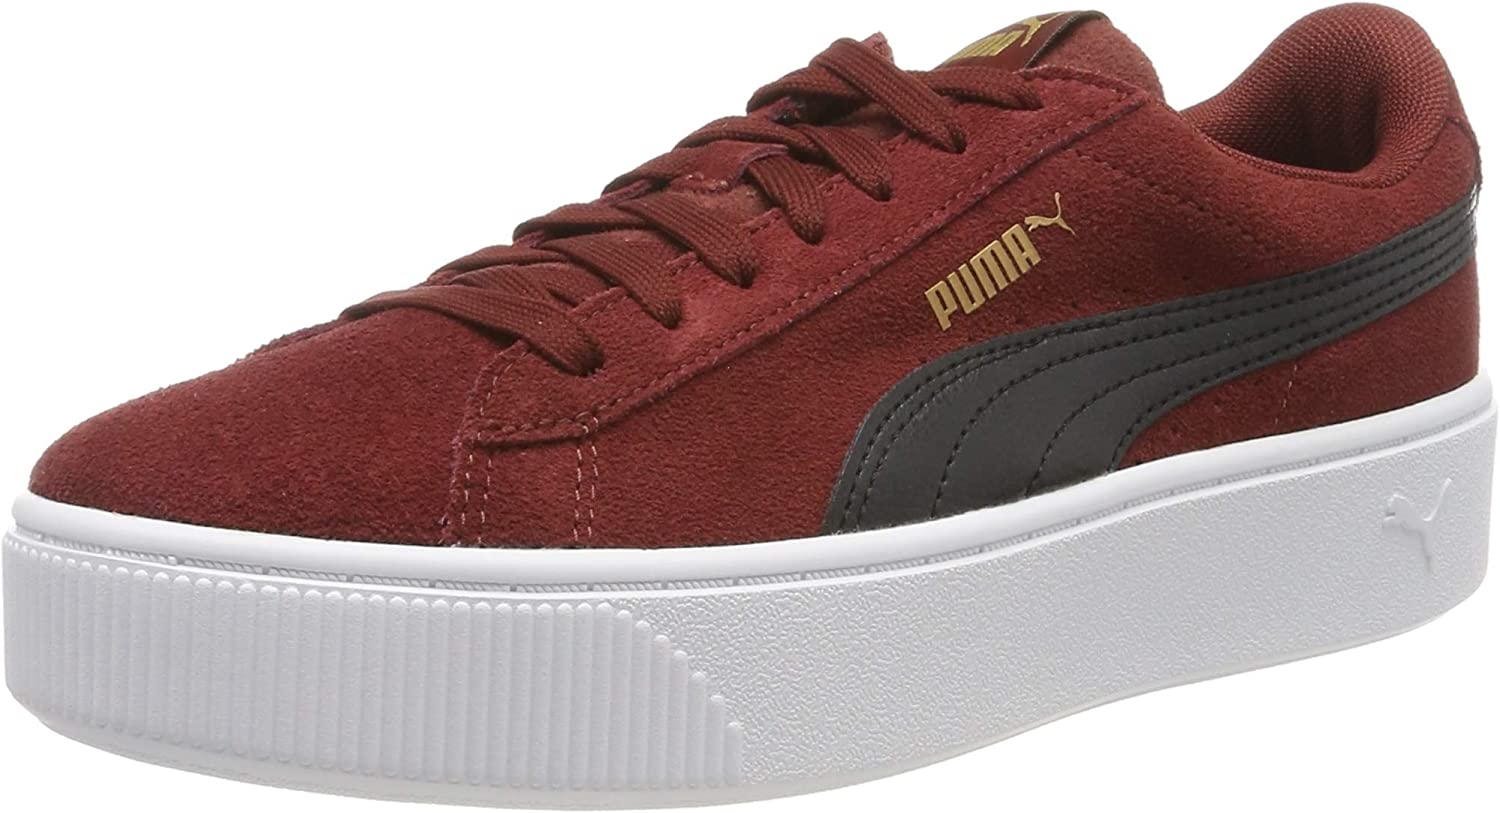 Puma Women's Vikky Stacked Sd Low Top Sneakers